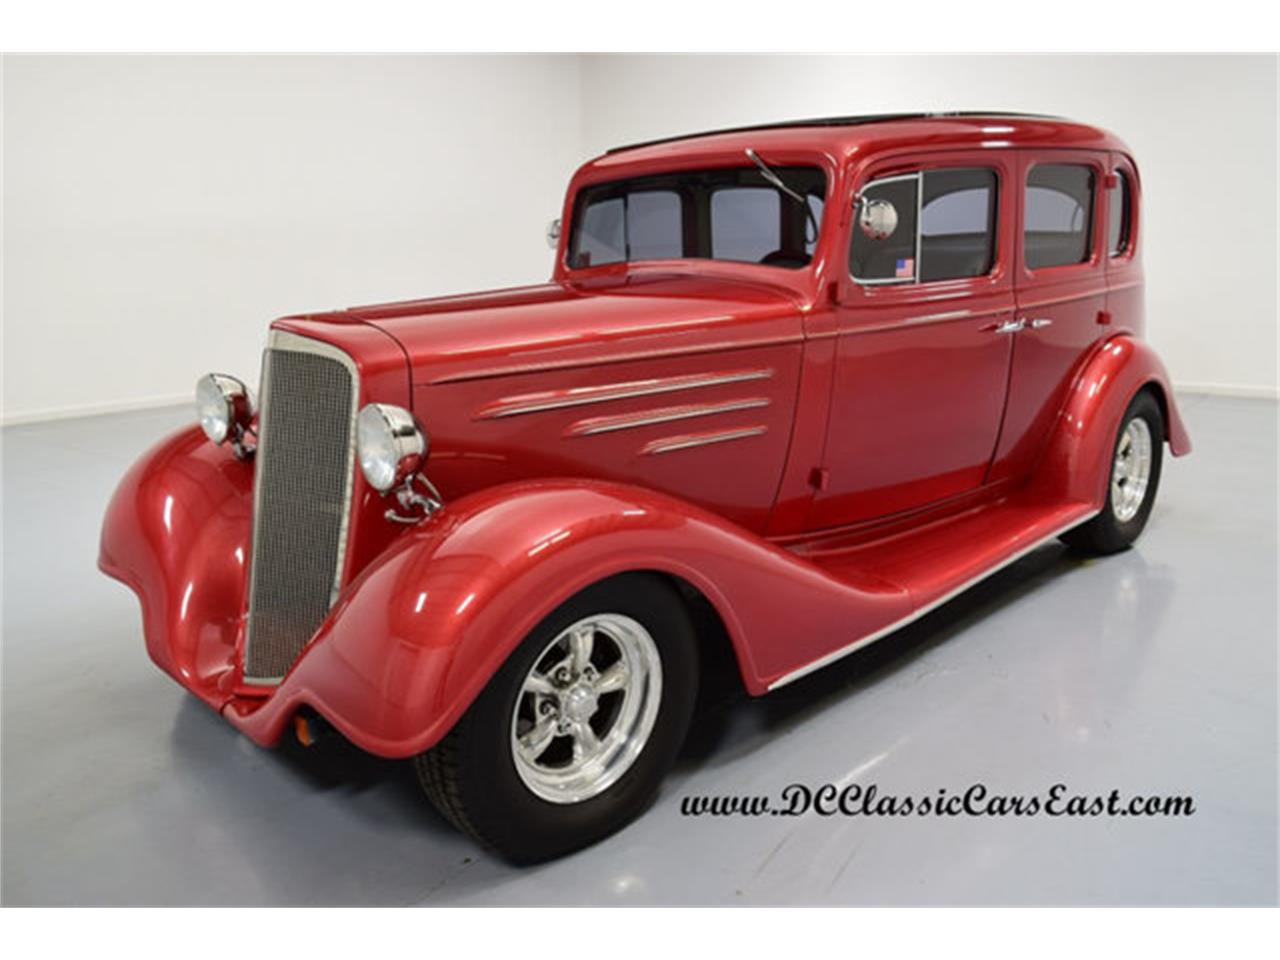 1934 Chevrolet Master Sport Sedan in Mooresville, North Carolina